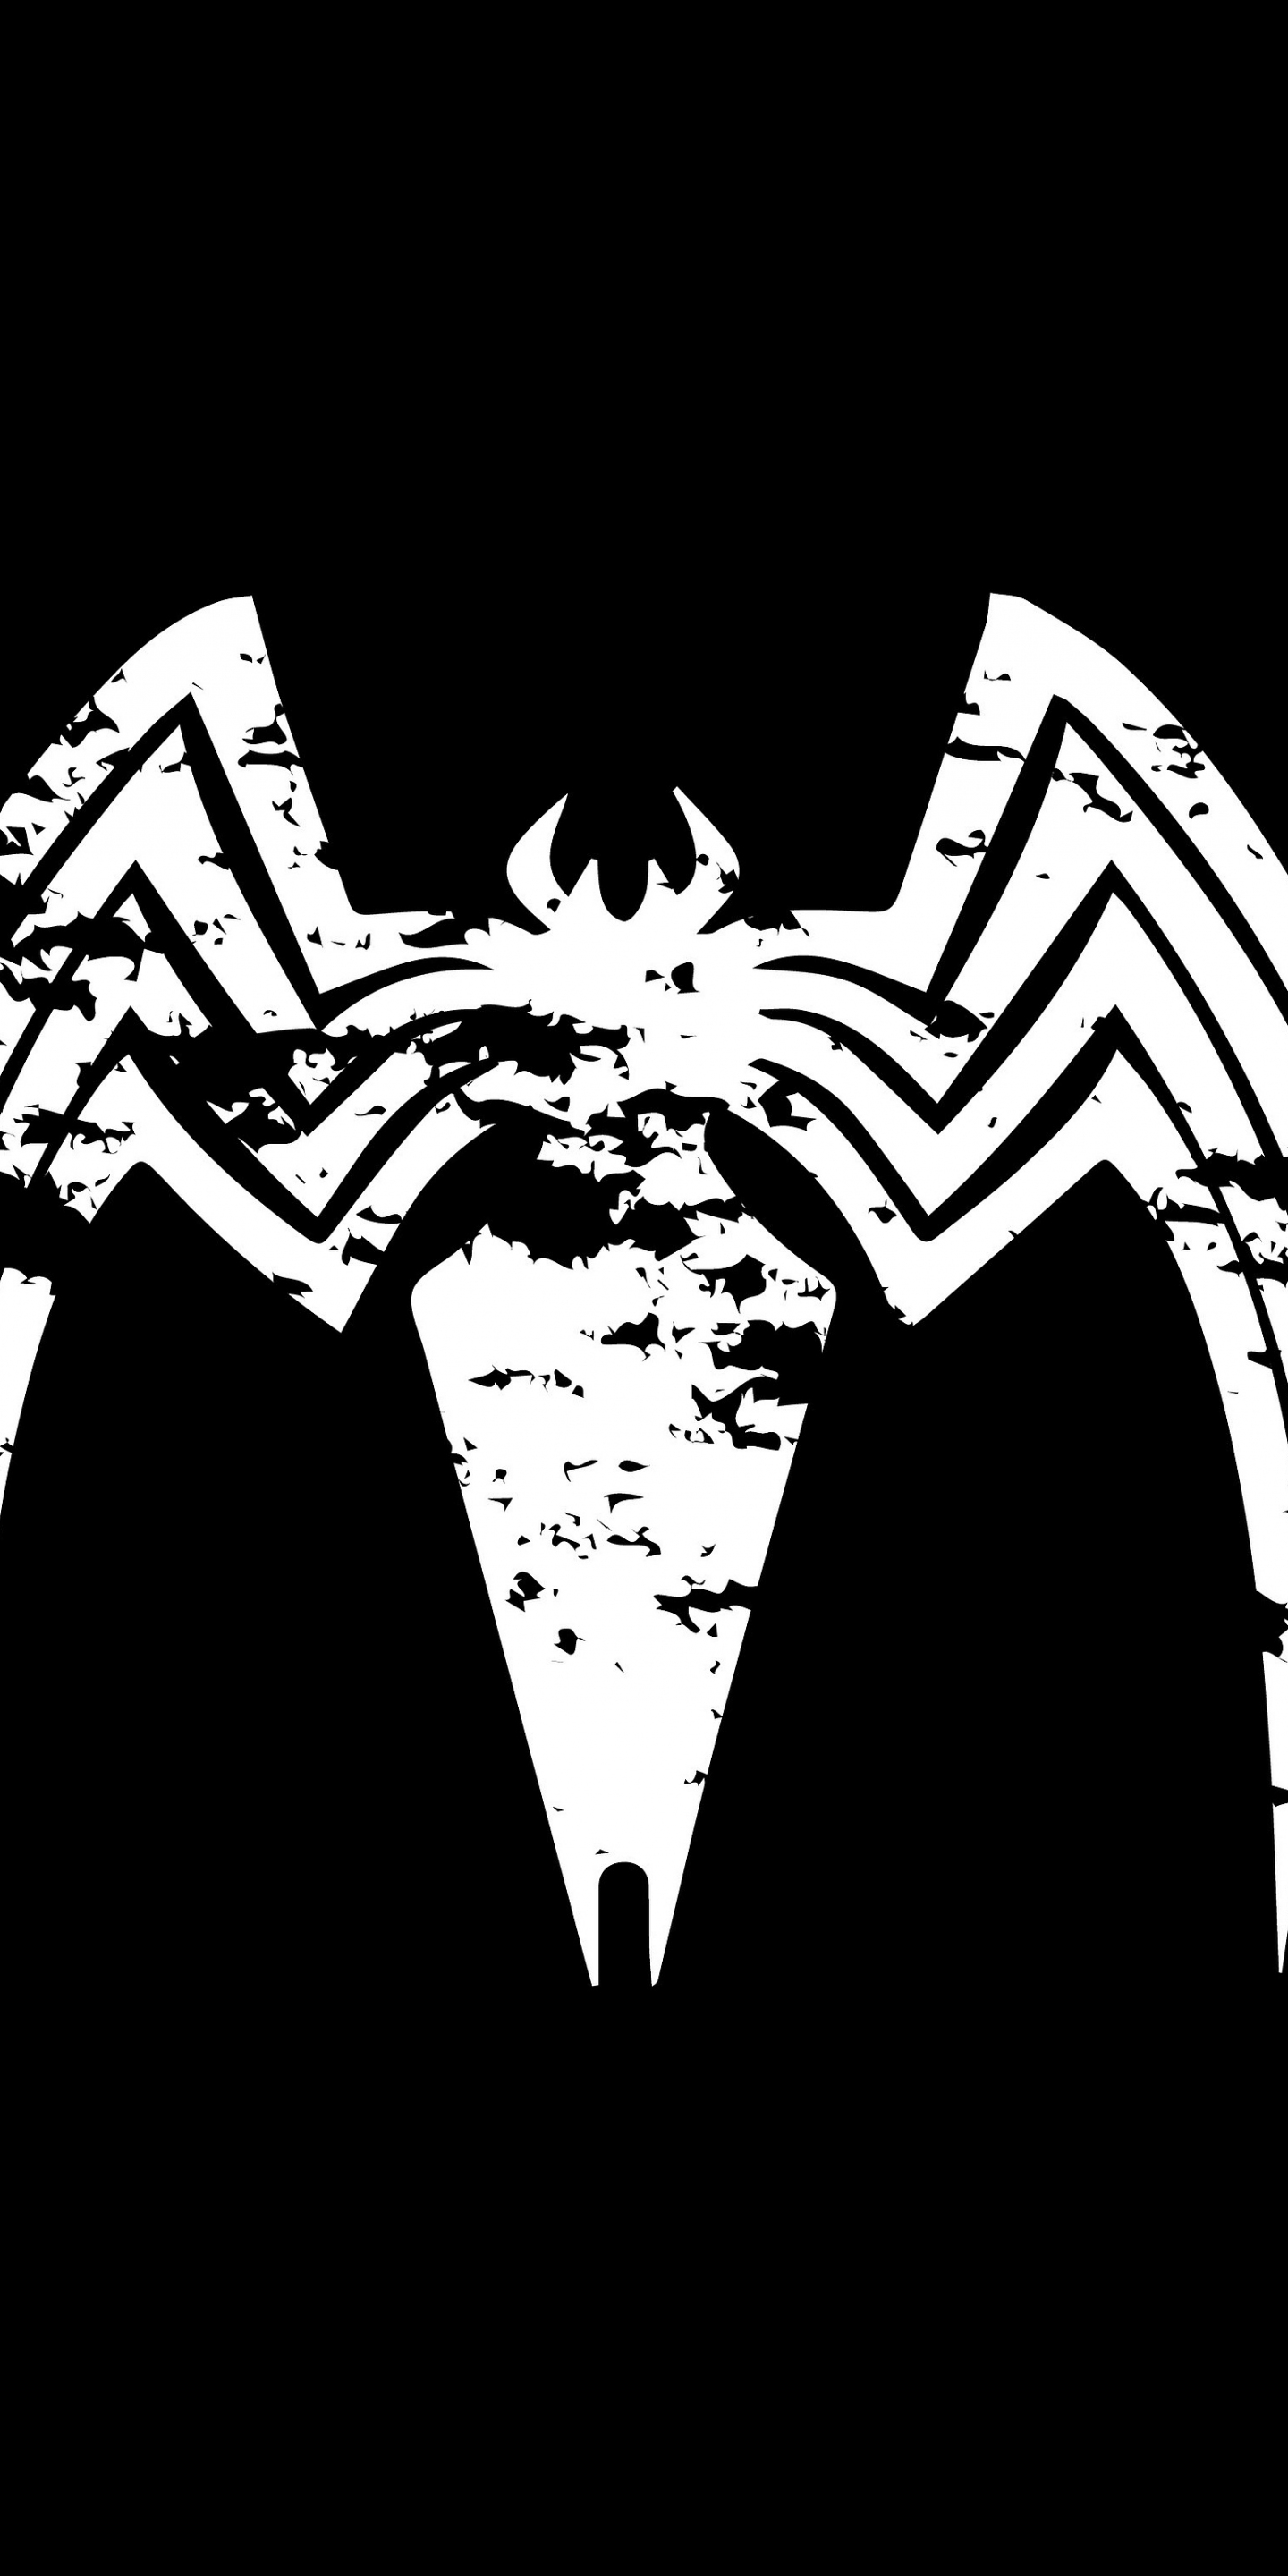 Wallpaper 4k Samsung Galaxy S8 Girls Download 1440x2880 Wallpaper Venom Logo Villain Minimal